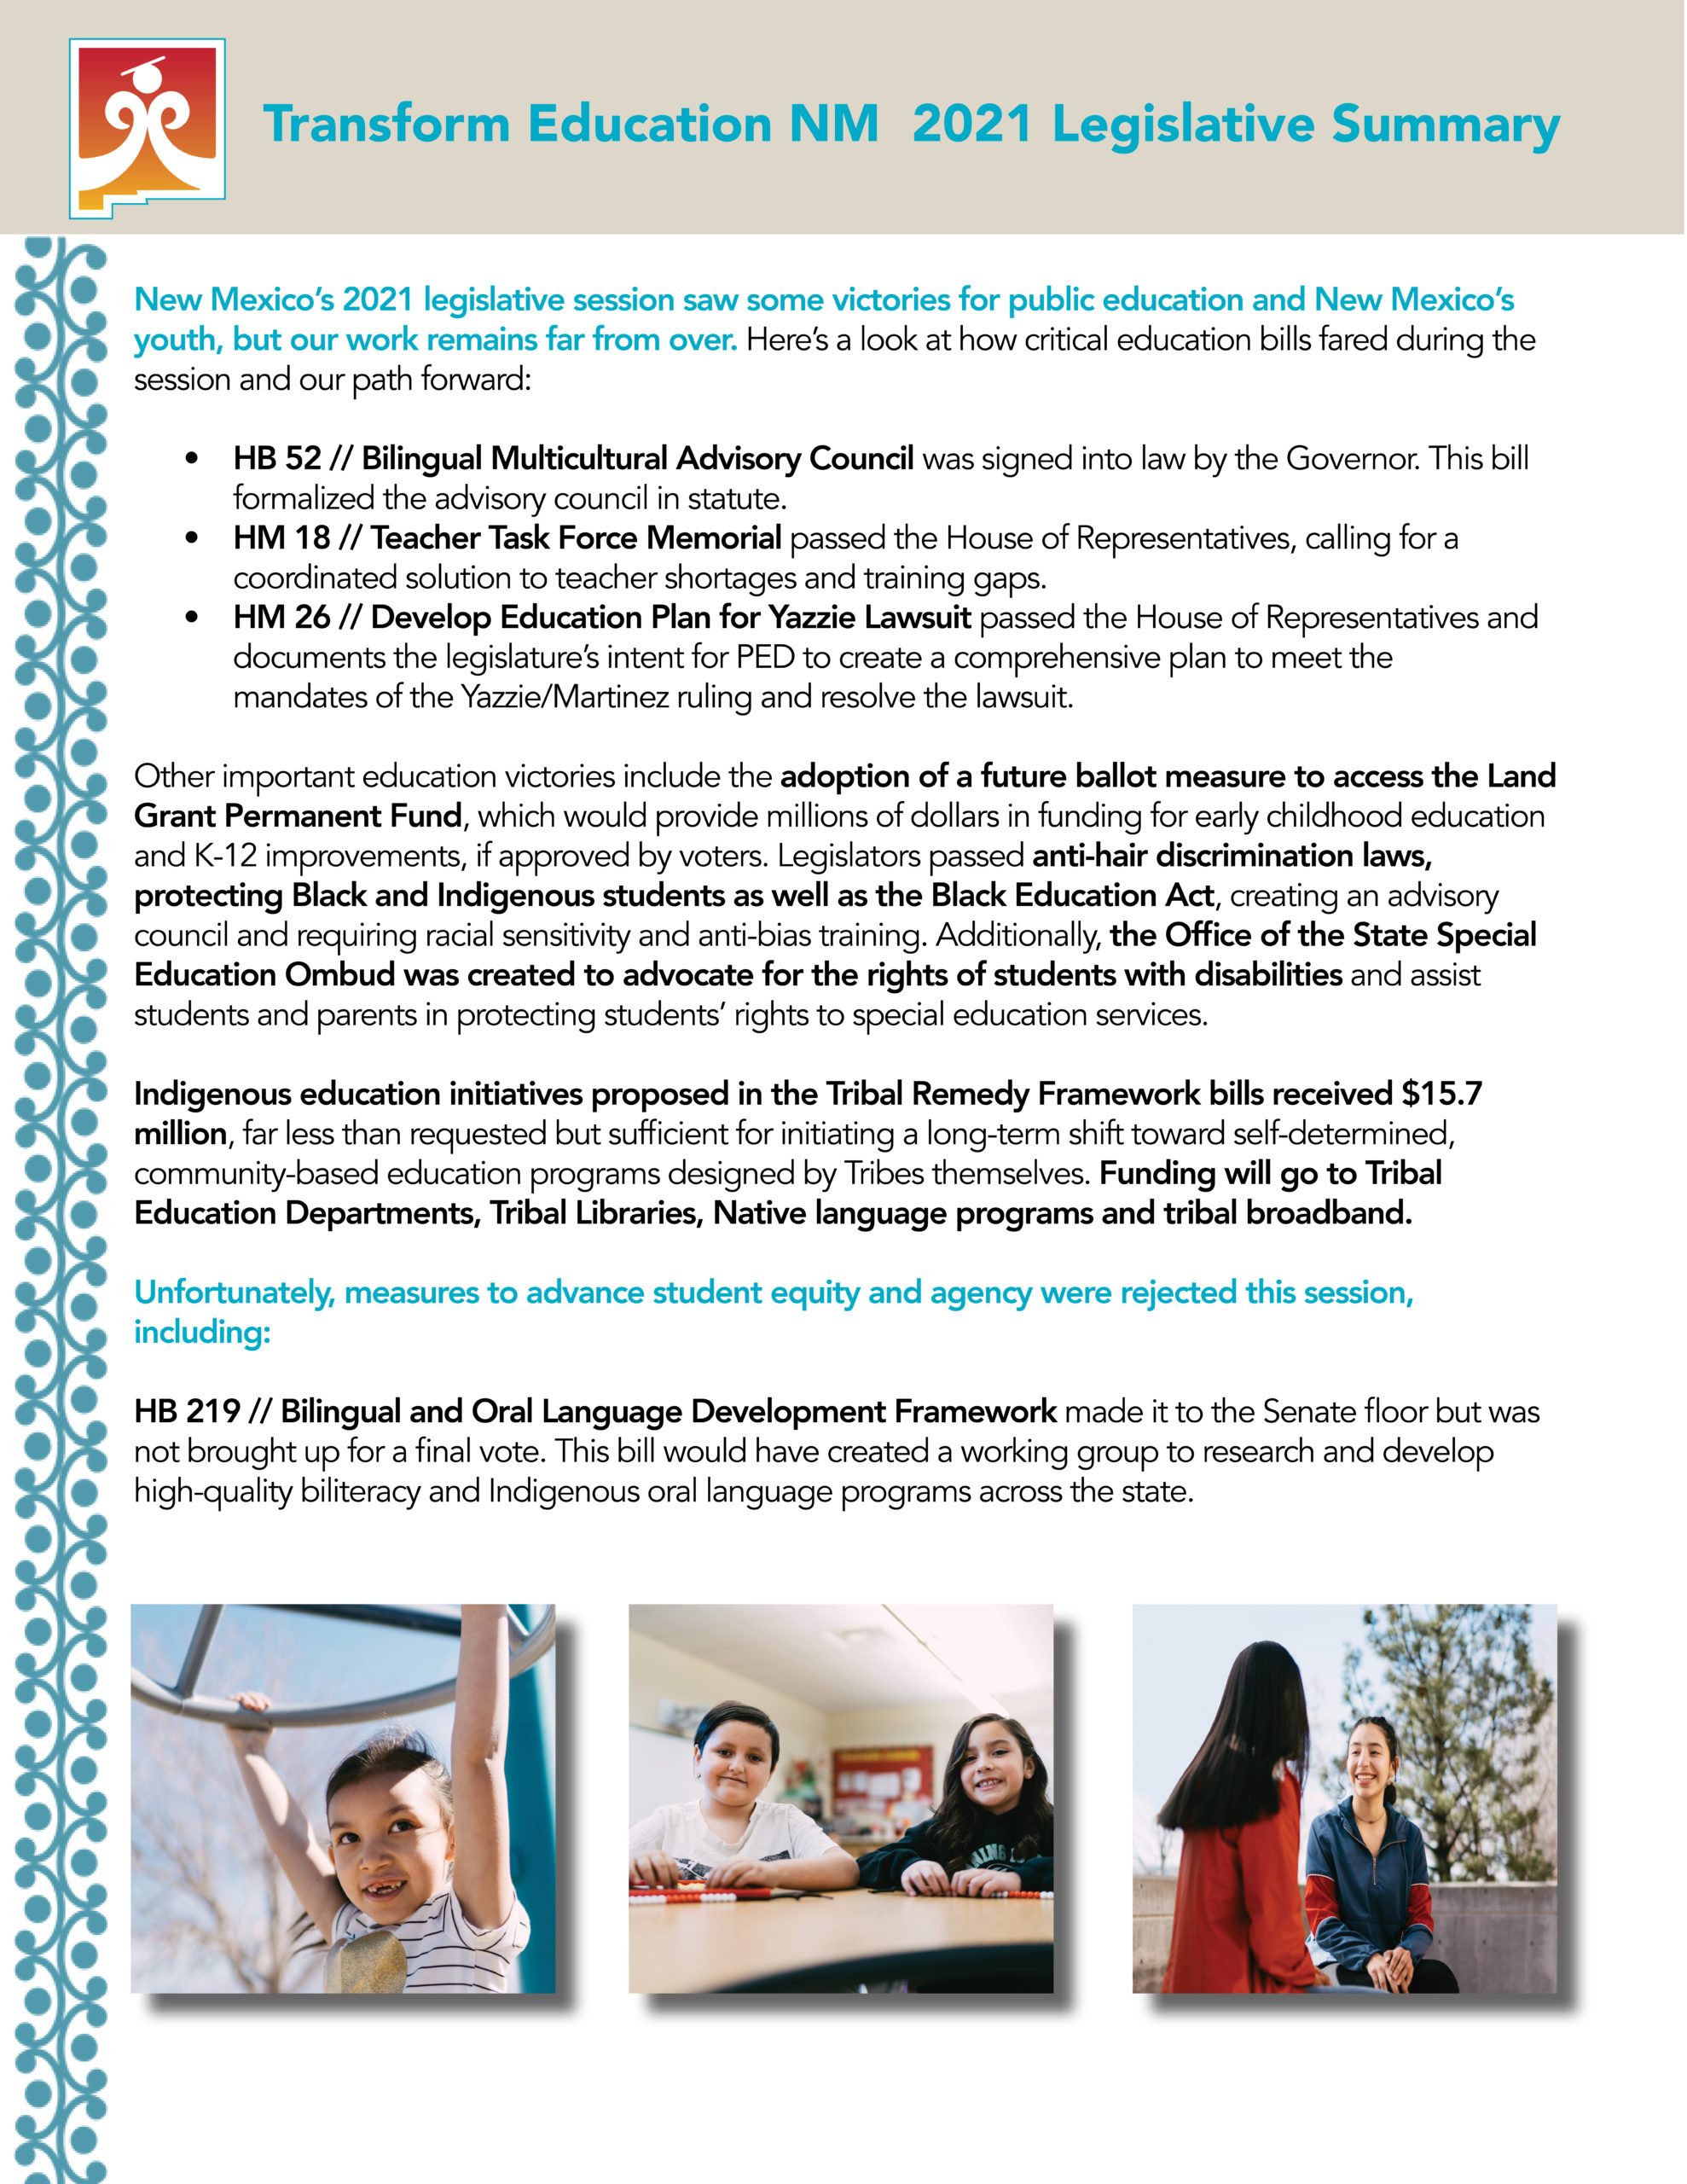 factsheet titled Transform Education NM 2021 Legislative Summary. Body text: New Mexico's 2021 legislative session saw some victories for public education and New Mexico's youth, but our work remains far from over. Here's a look at how critical education bills fared during the session and our path forward: HB 52 Bilingual Multicultural Advisory Council was signed into law by the Governor. This bill formalized the advisory council in statute. HM 18 Teacher Task Force Memorial passed the House of Representatives, calling for a coordinated solution to teacher shortages and training gaps. HM 26 Develop Education Plan for Yazzie Lawsuit passed the House of Representatives and documents the legislature's intent for PED to create a comprehensive plan to meet the mandates of the Yazzie/Martinez ruling and resolve the lawsuit. Other important education victories include the adoption of a future ballot measure to access the Land Grant Permanent Fund, which would provide millions of dollars in funding for early childhood education and K-12 improvements, if approved by voters. Legislators passed anti-hair discrimination laws, protecting Black and Indigenous students as well as the Black Education Act, creating an advisory council and requiring racial sensitivity and anti-bias training. Additionally, the Office of the State Special Education Ombud was created to advocate for the rights of students with disabilities and assist students and parents in protecting students' rights to special education services. Indigenous education initiatives proposed in the Tribal Remedy Framework bills received $15.7 million, far less than requested but sufficient for initiating a long-term shift toward self-determined, community-based education programs designed by Tribes themselves. Funding will go to Tribal Education Departments, Tribal Libraries, Native language programs and tribal broadband. Unfortunately, measures to advance student equity and agency were rejected this session, including: H